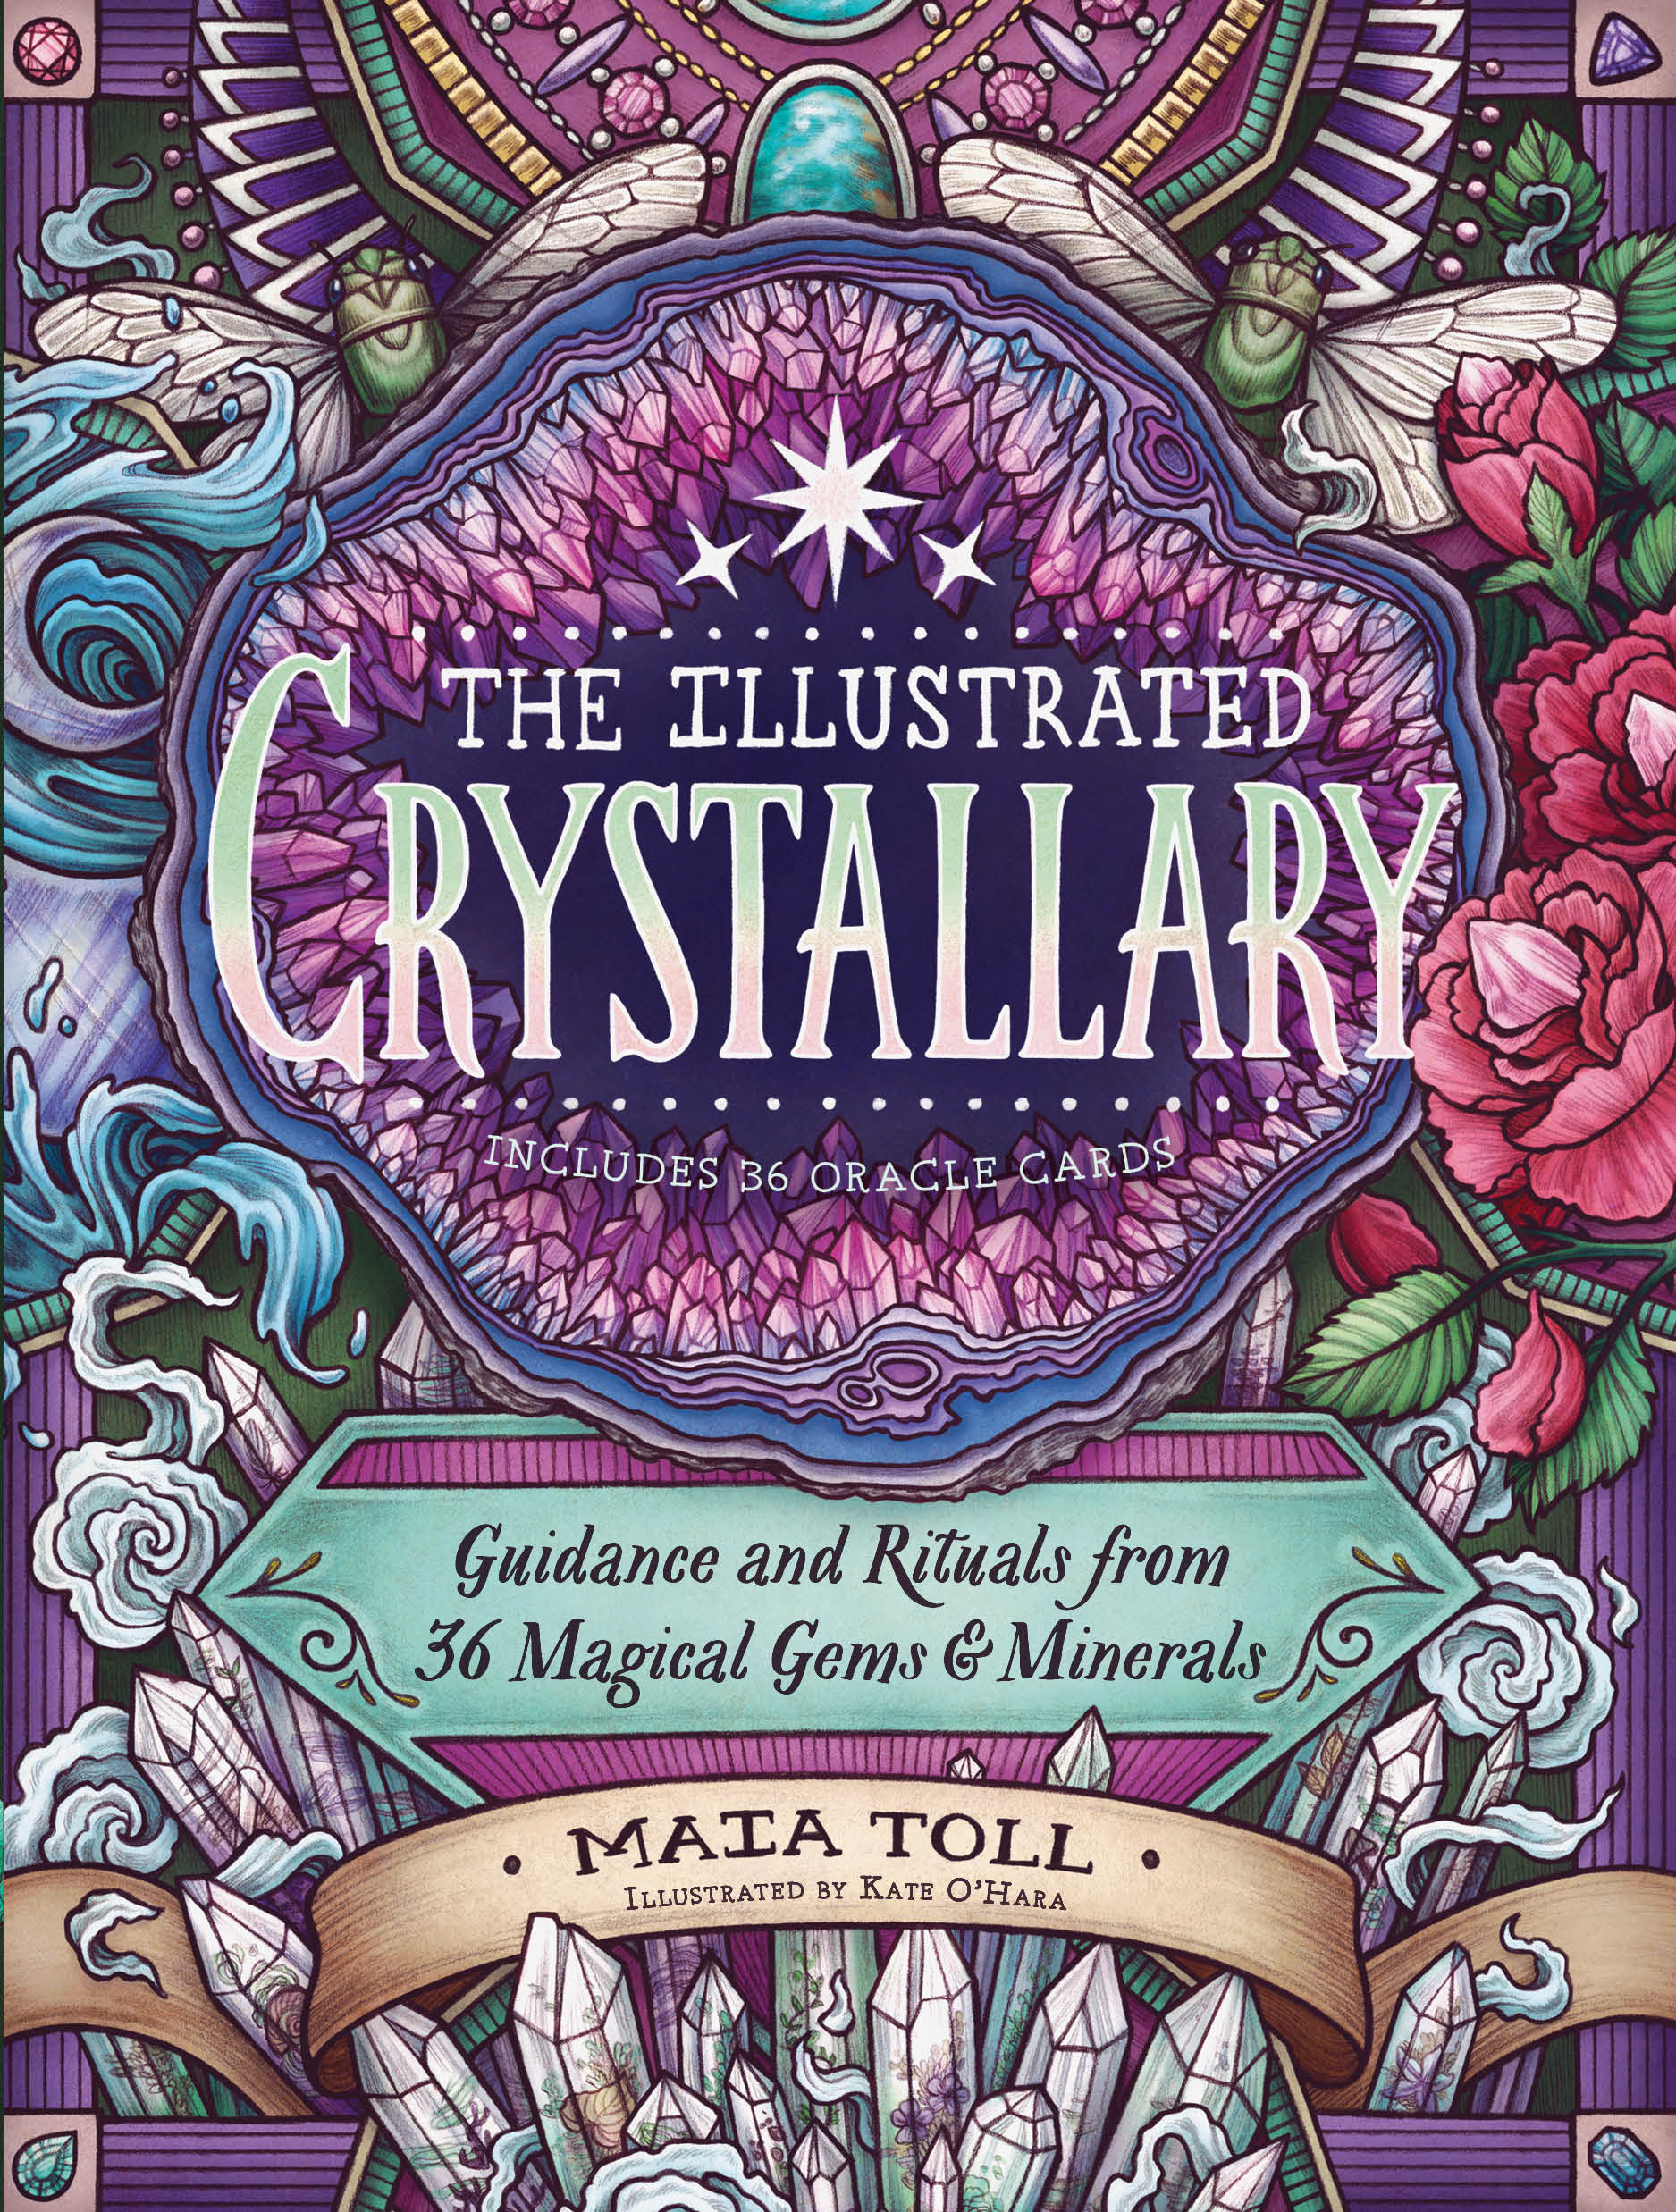 The Illustrated Crystallary Guidance and Rituals from 36 Magical Gems & Minerals - Maia Toll